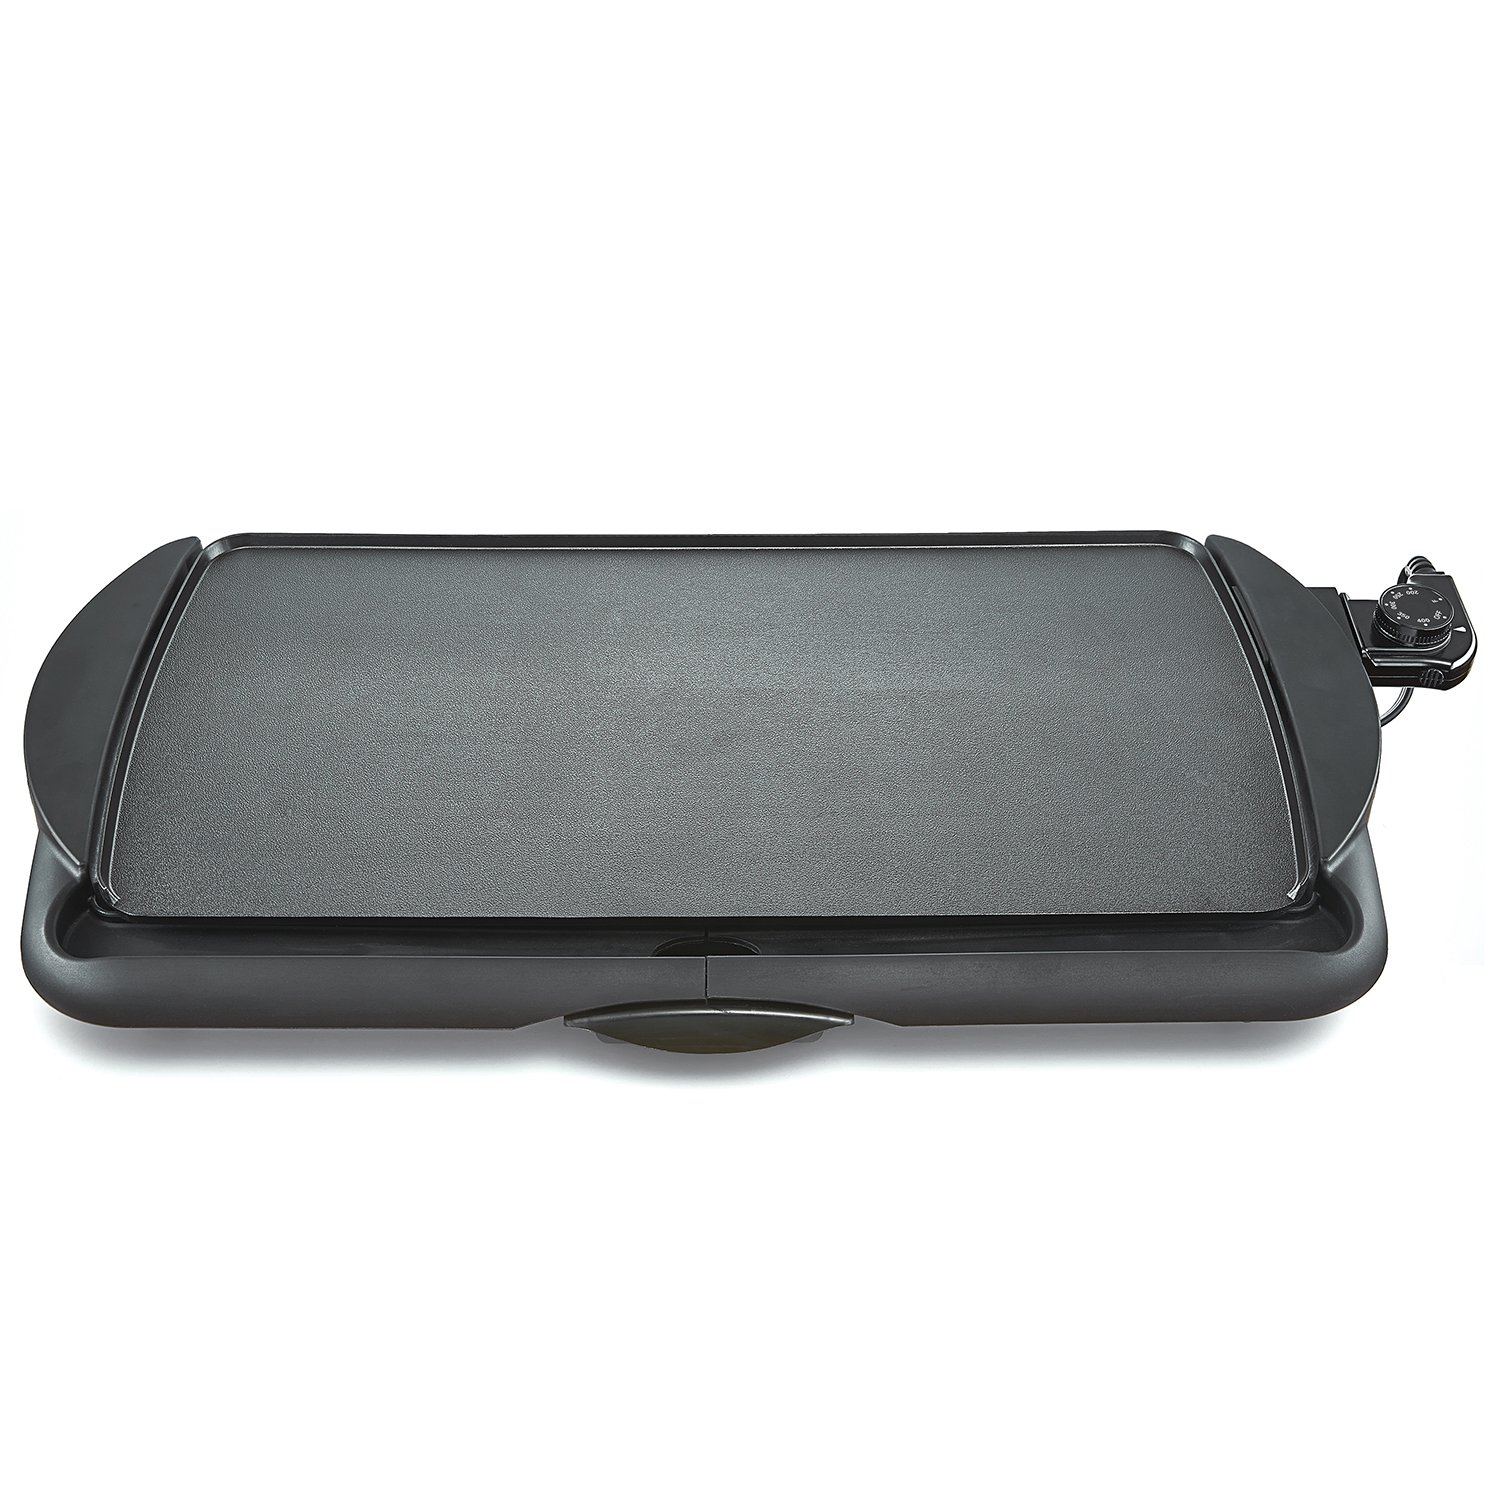 BELLA 10.5 Inch by 20 Inch Electric Non Stick Griddle, Black  BPA-FREE 13602